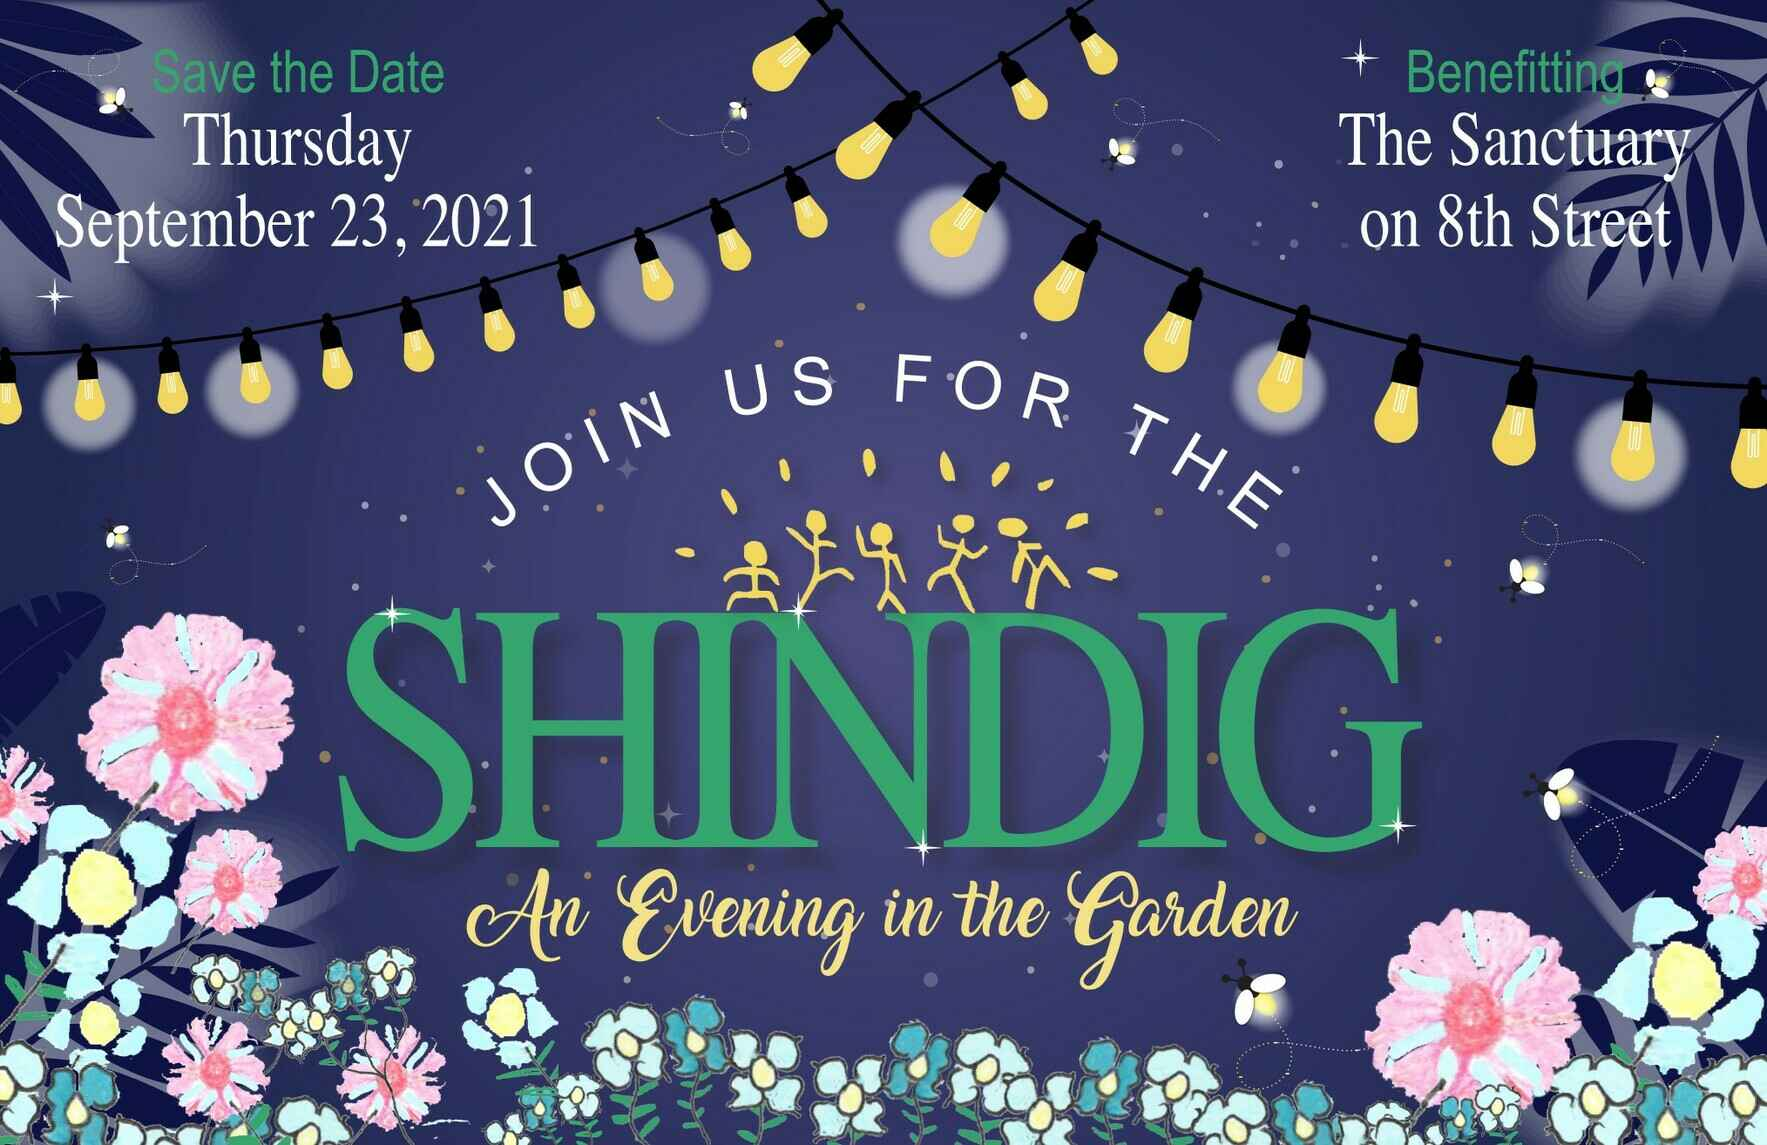 Shindig 2021: An Evening in the Garden image